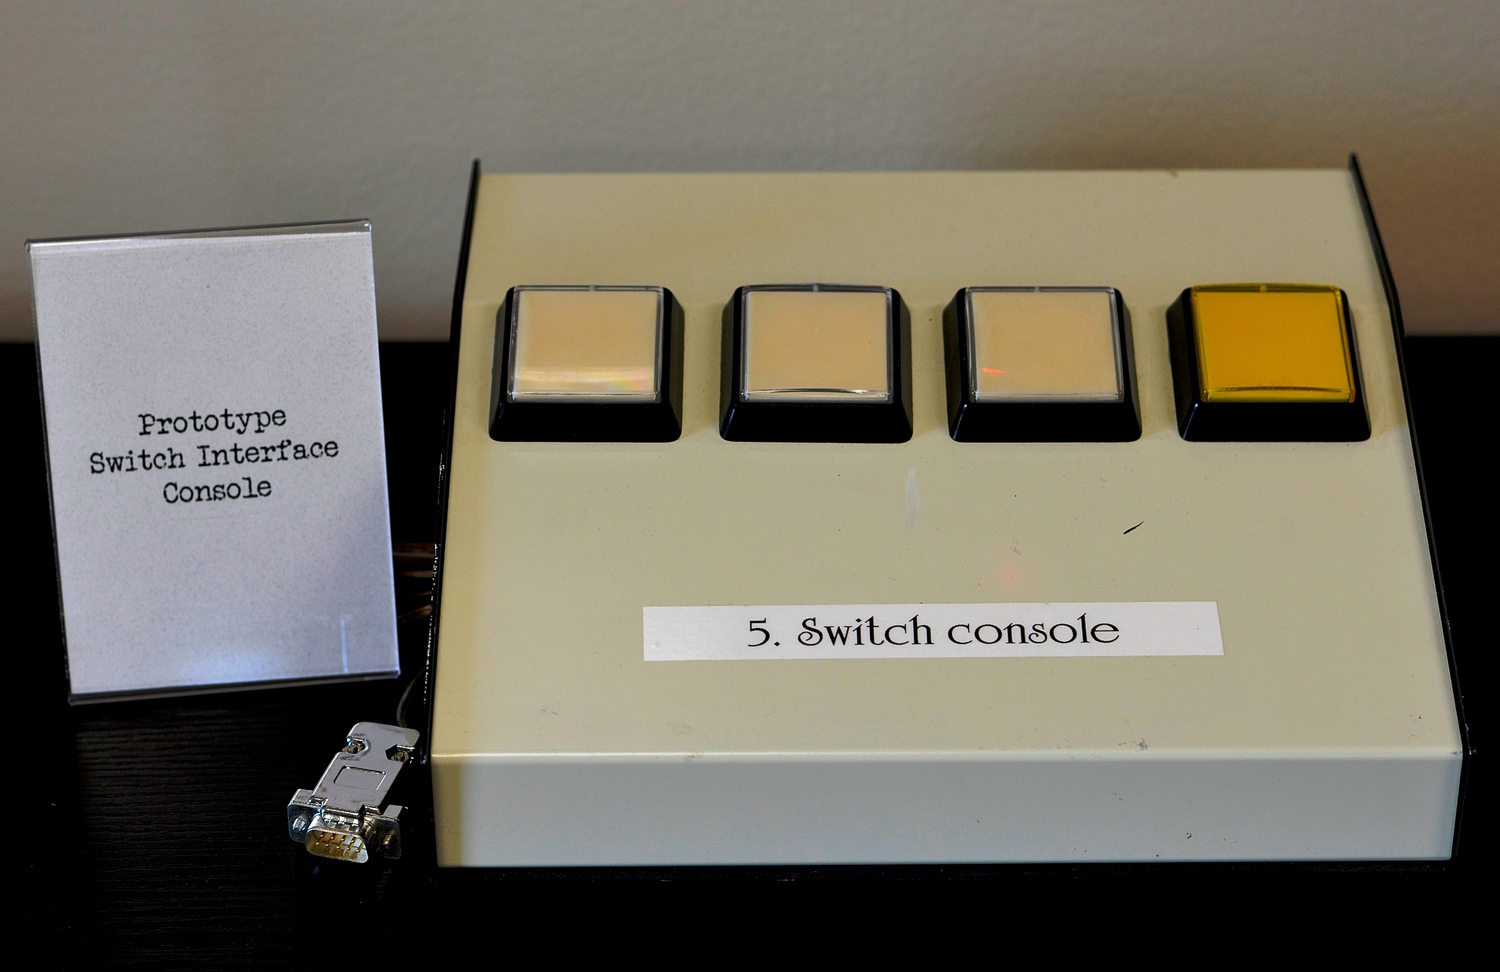 Prototype Switch Interface Console<br />